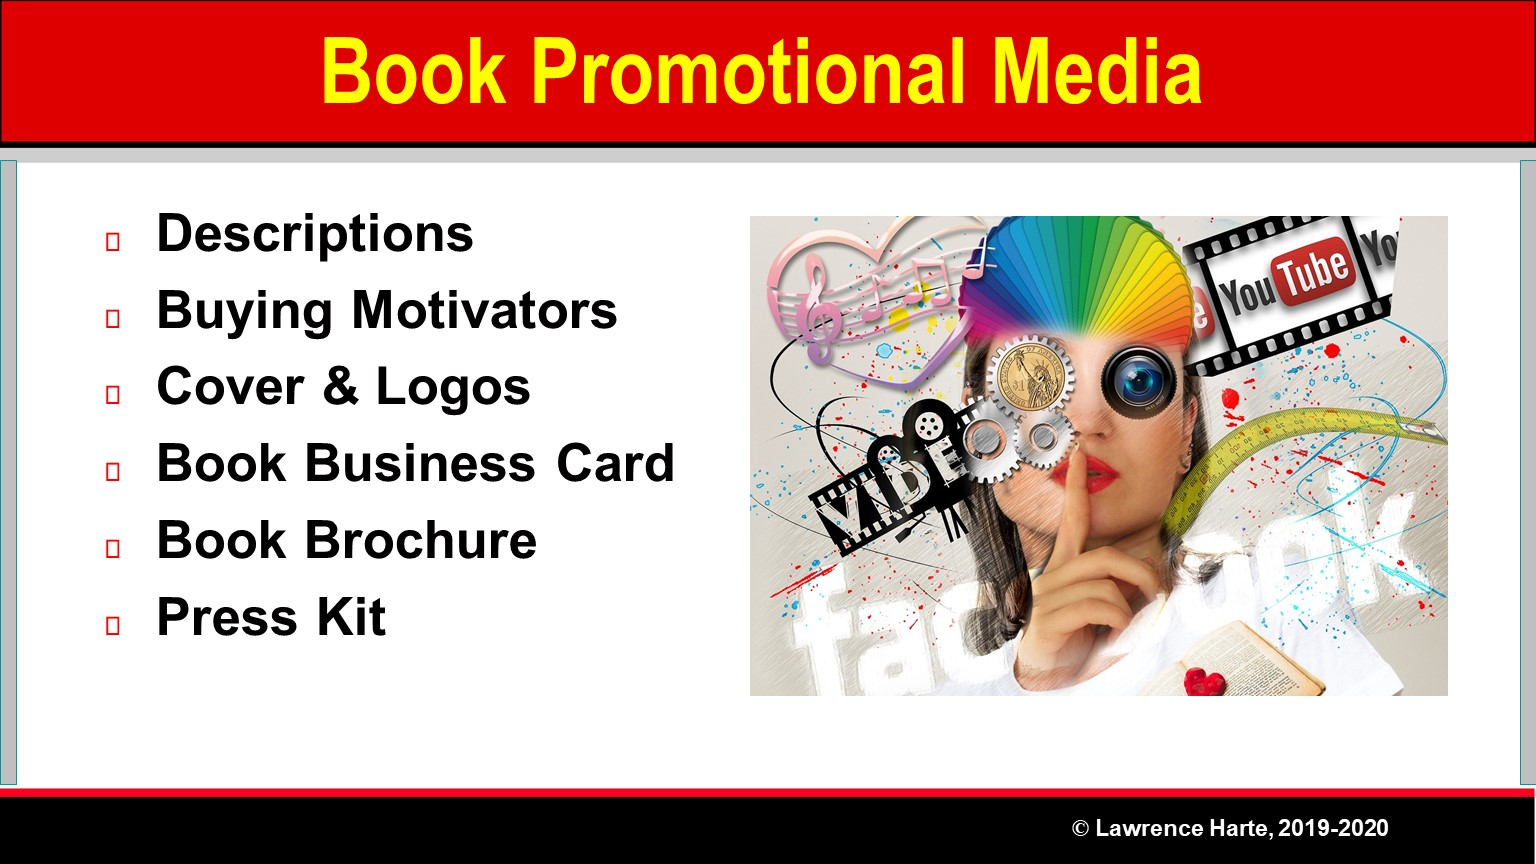 Book Pre-Launch Marketing Promotional Media